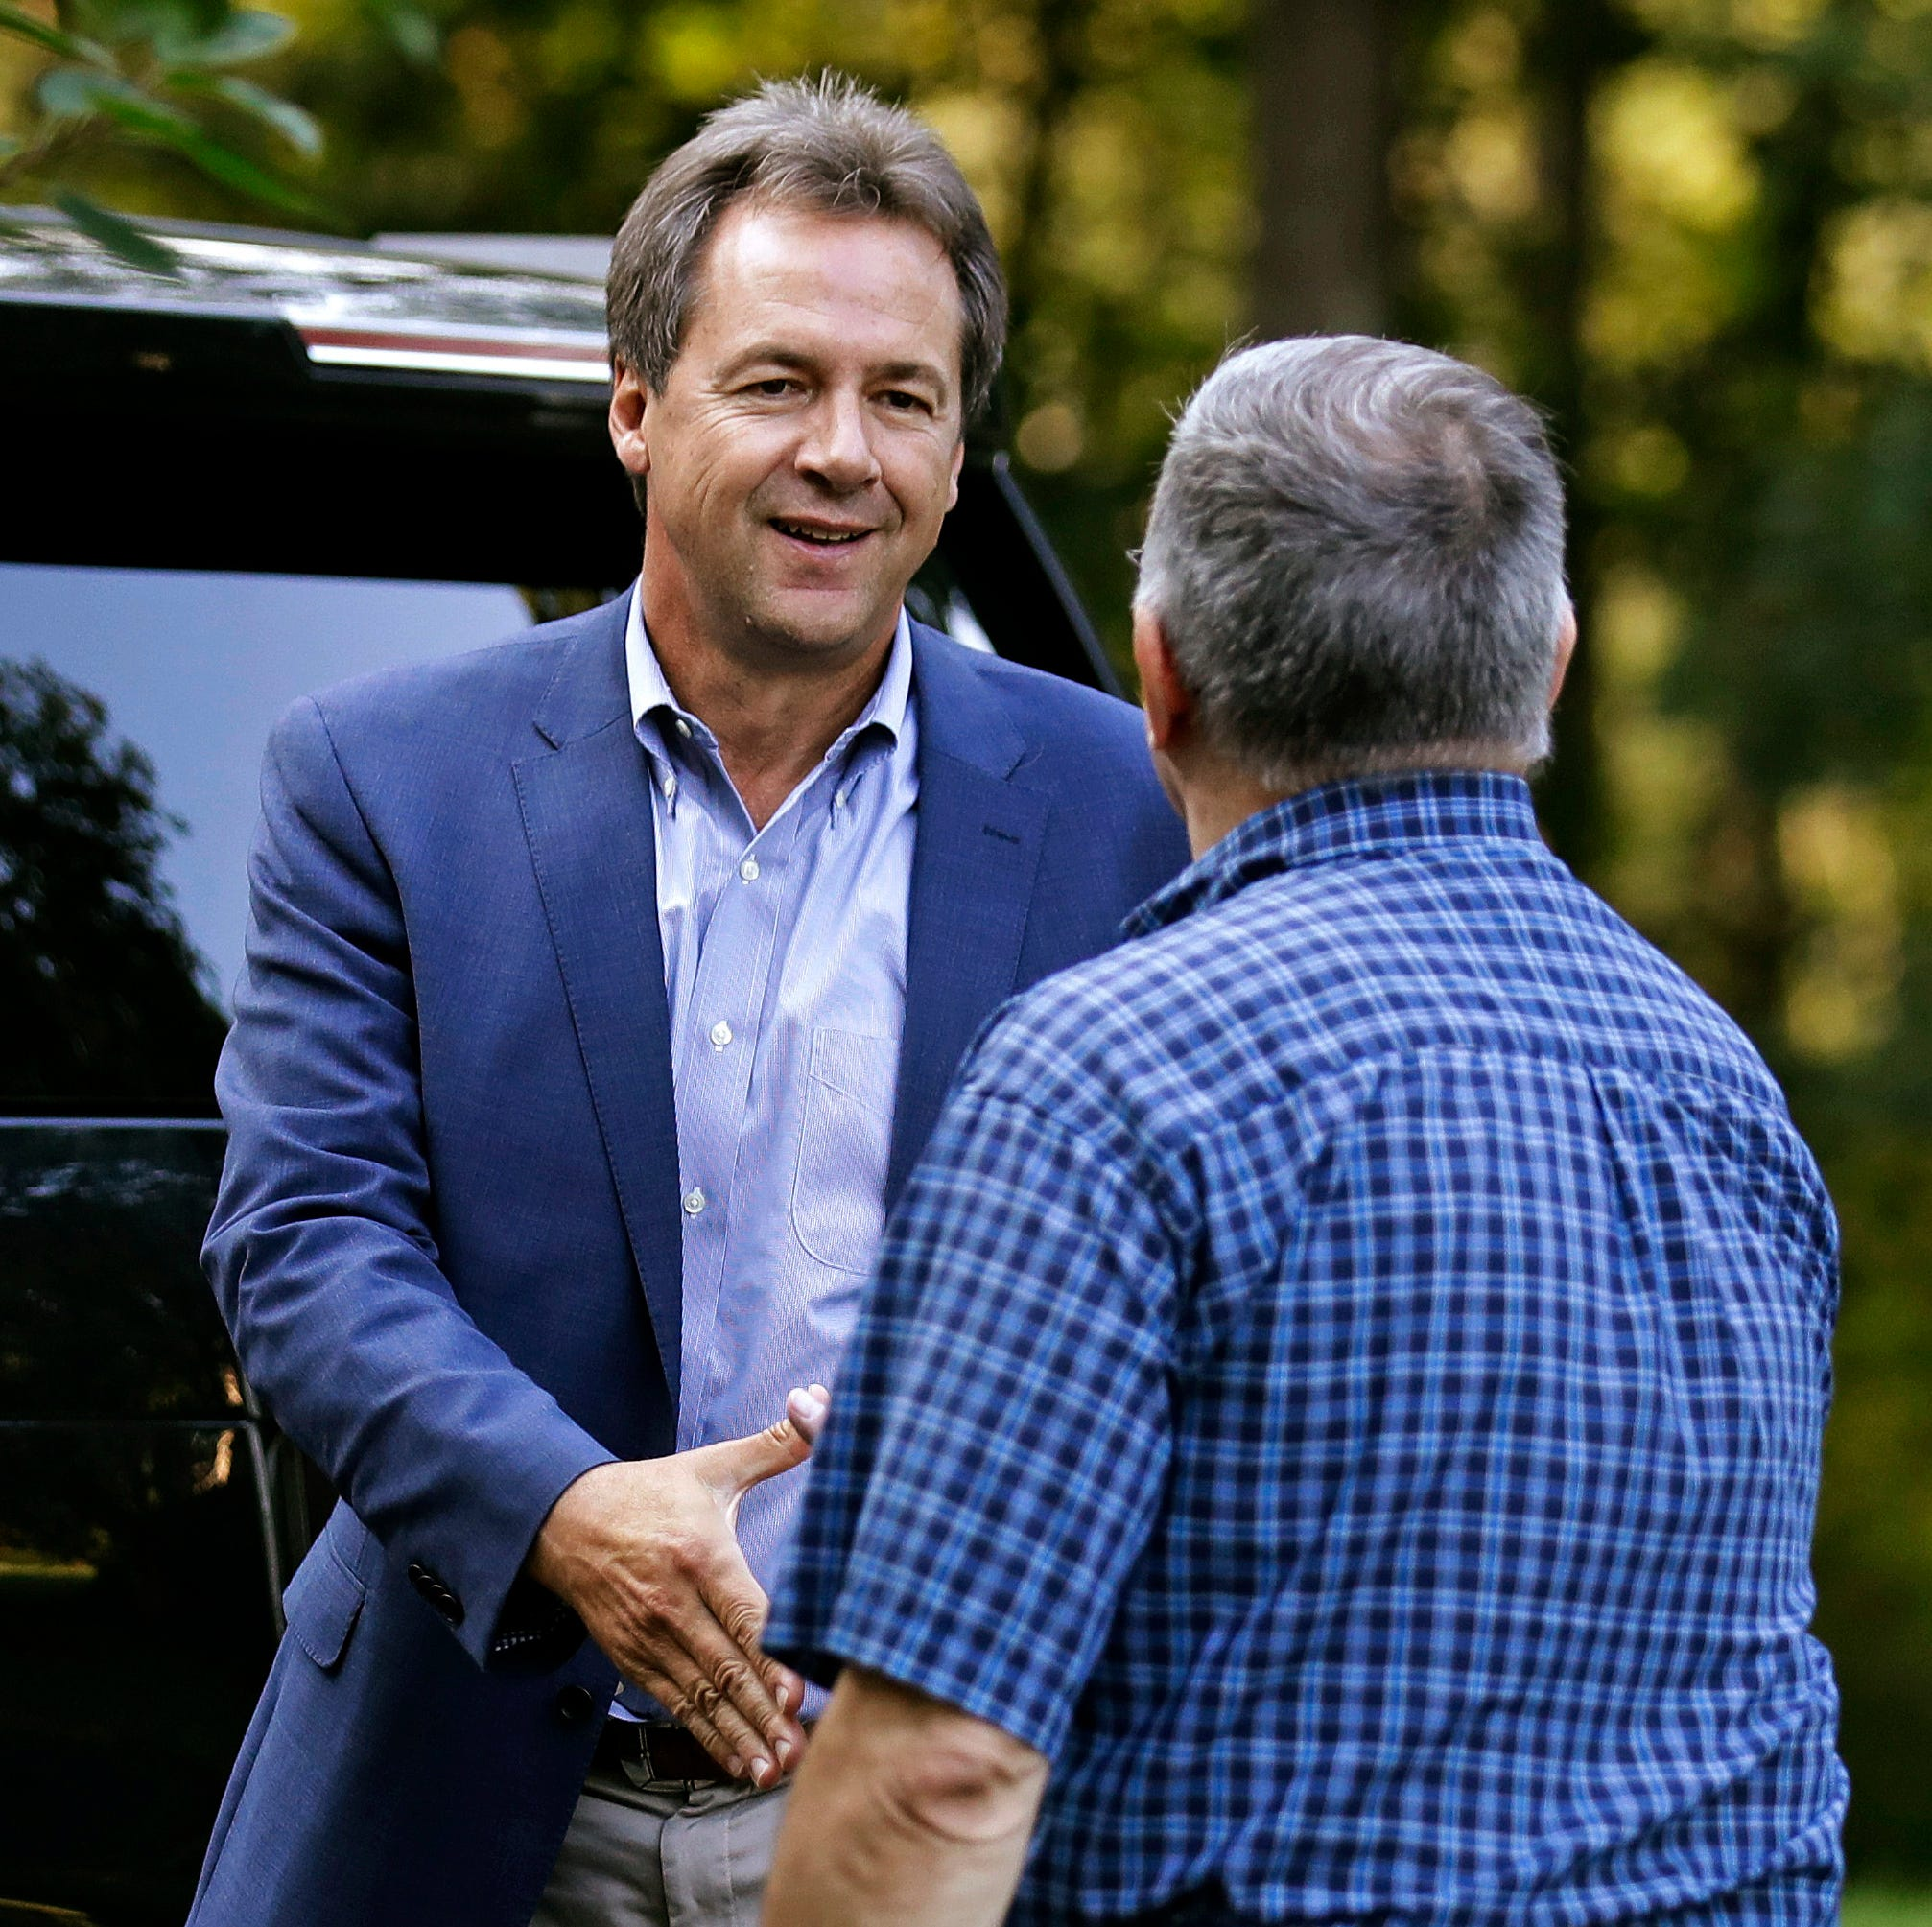 Possible 2020 candidate Montana Gov. Steve Bullock to campaign for Iowa Democrats